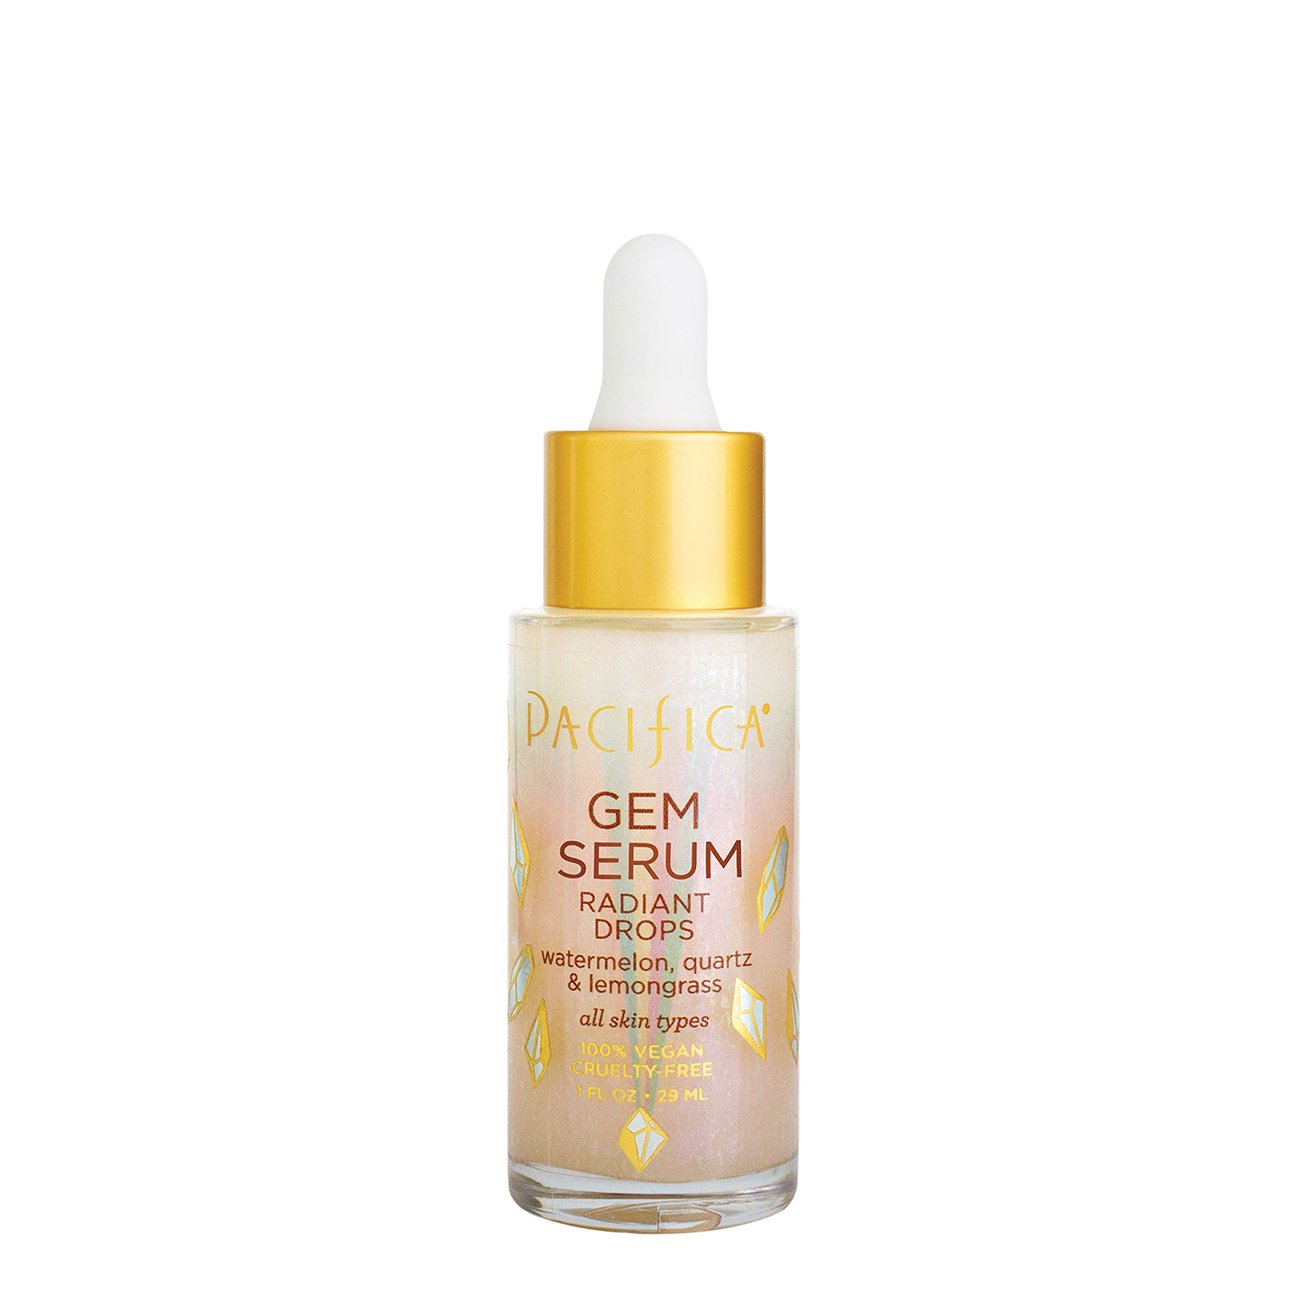 Gem Serum Radiant Drops - $16 | PacificaRose quartz, watermelon and lemongrass come together with graceful mica to boost your skin's aura & glow.